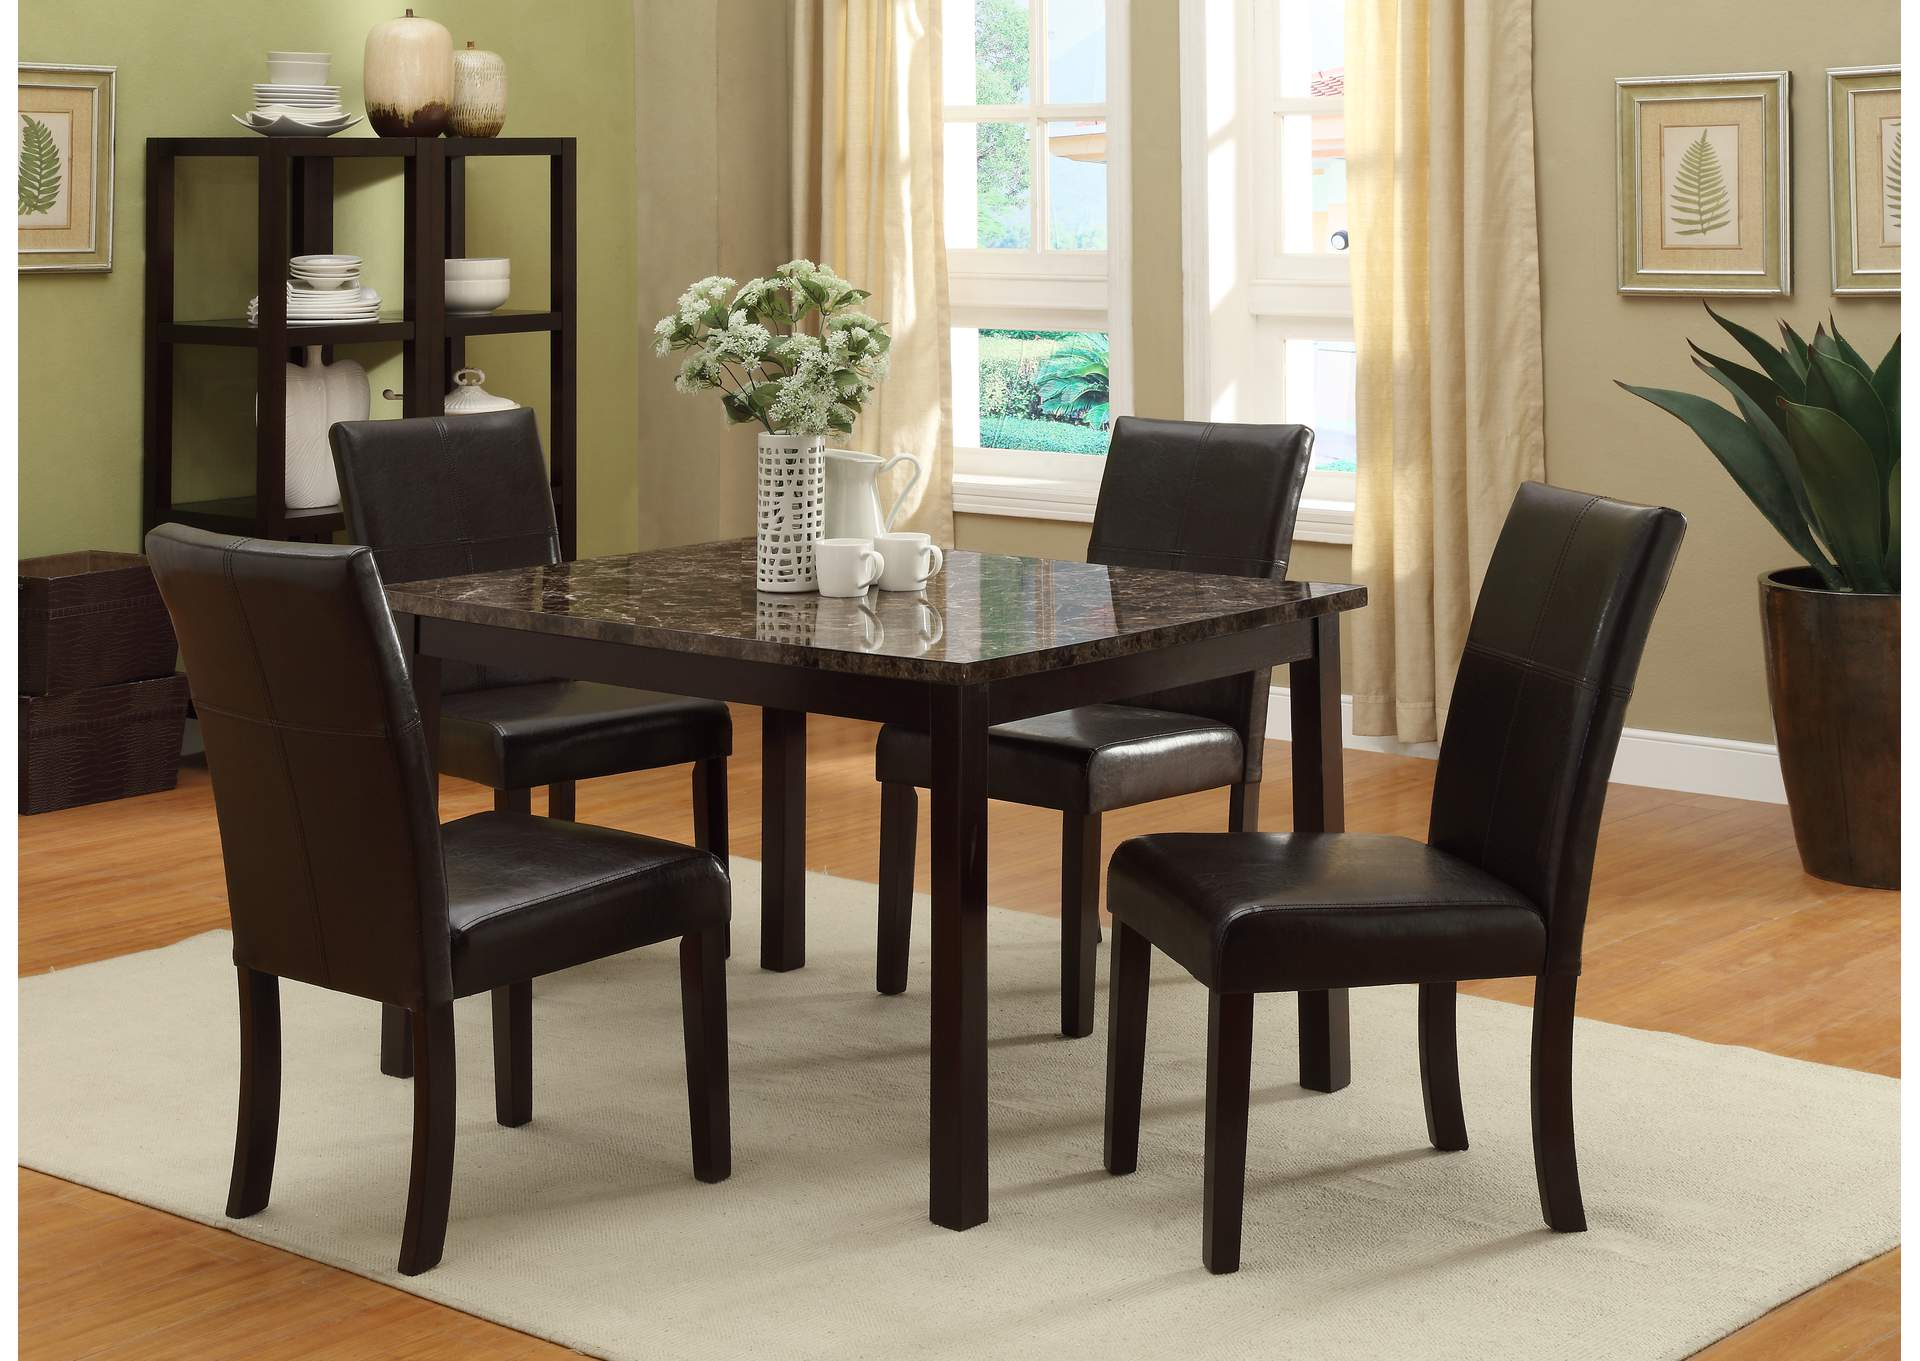 Pompeii Dining Table W 4 Side Chairs